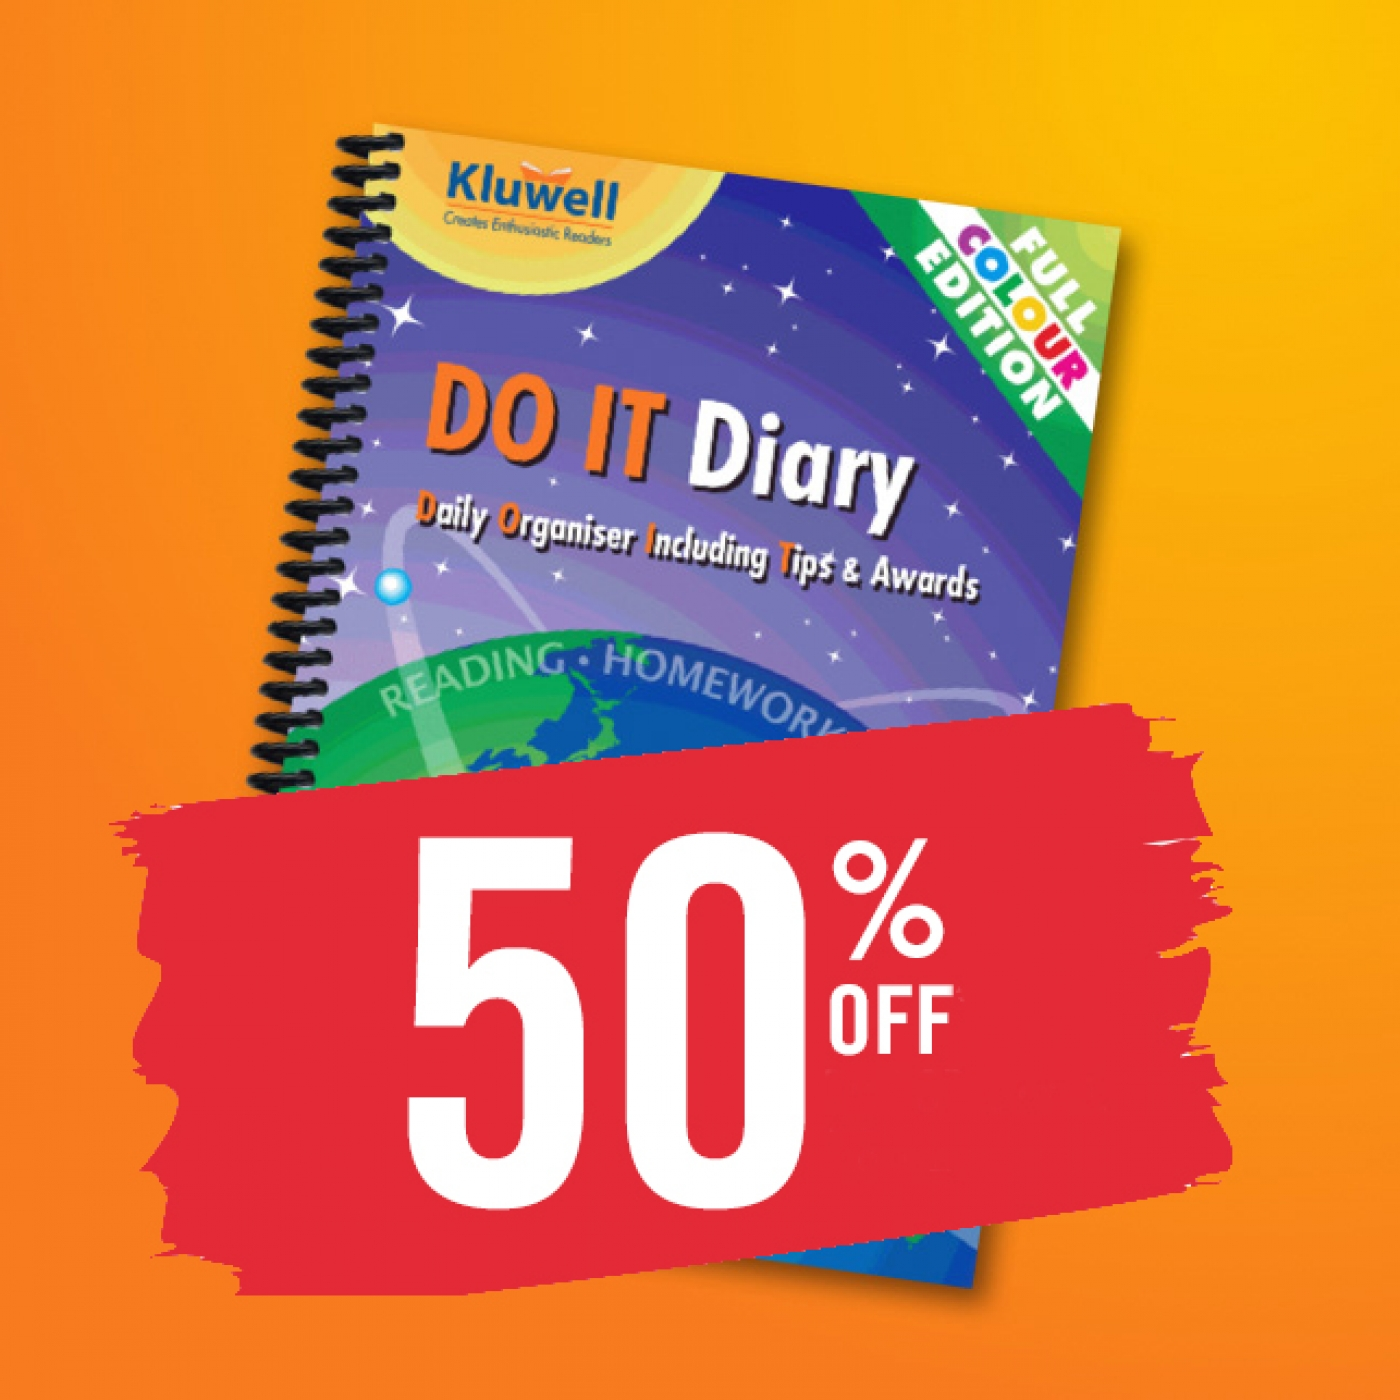 do-it-diary sale